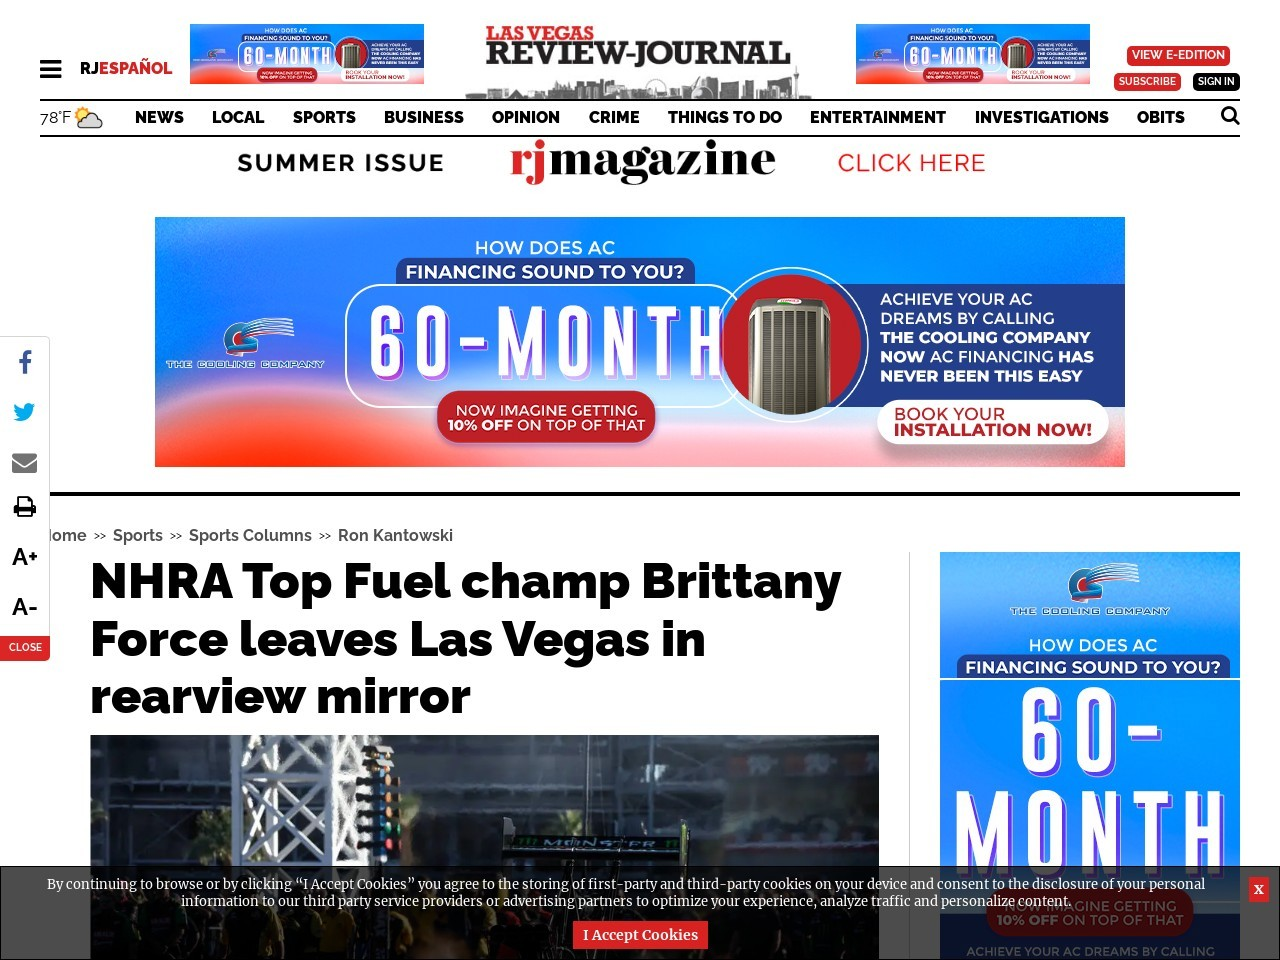 NHRA Top Fuel champ Brittany Force leaves Las Vegas in rearview mirror